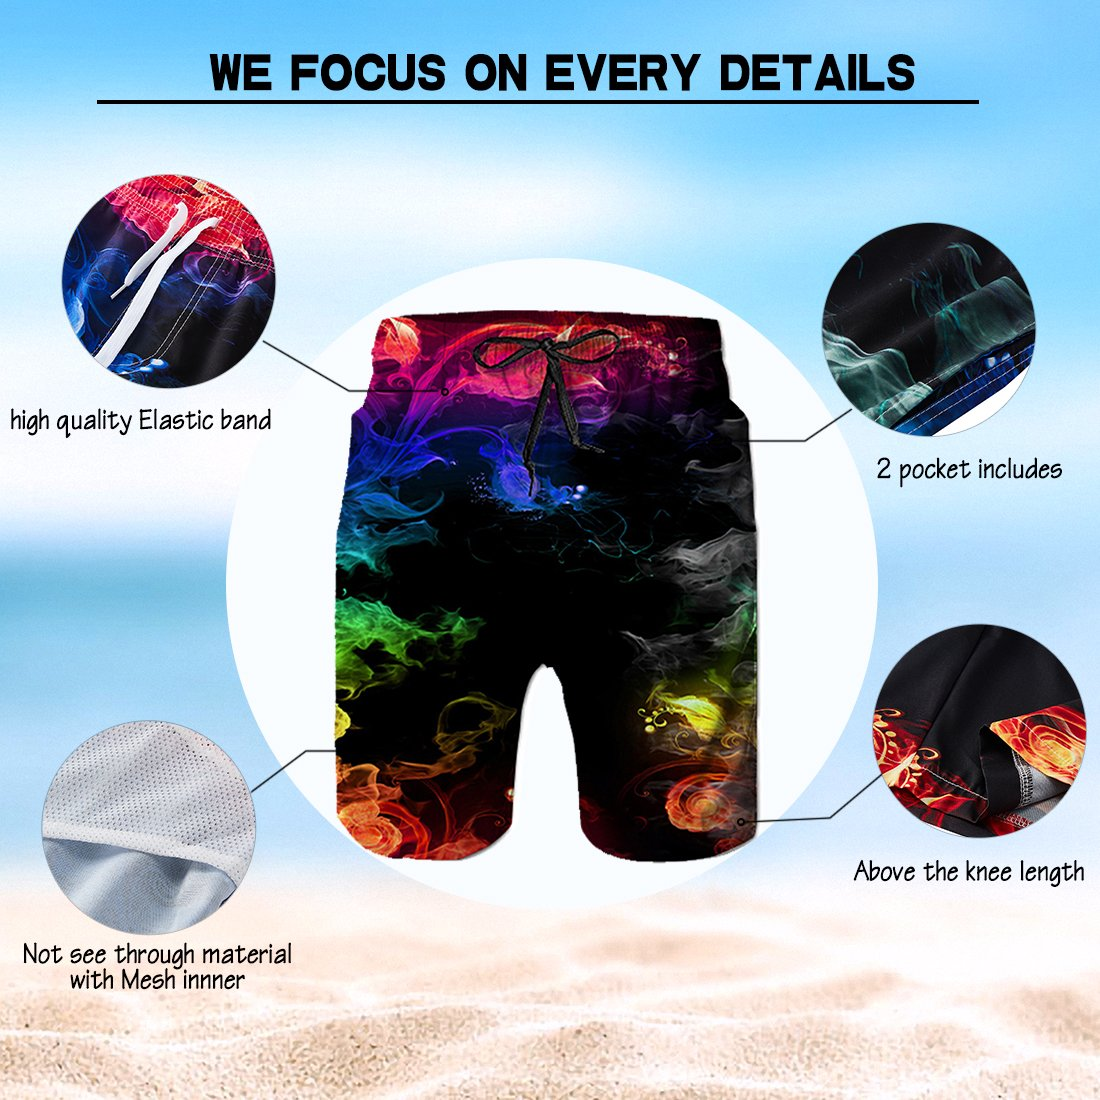 Alistyle Mens Boys Medium Length 3D Print Smoke Graphic Summer Beach Shorts Surfing Trunks by Alistyle (Image #4)